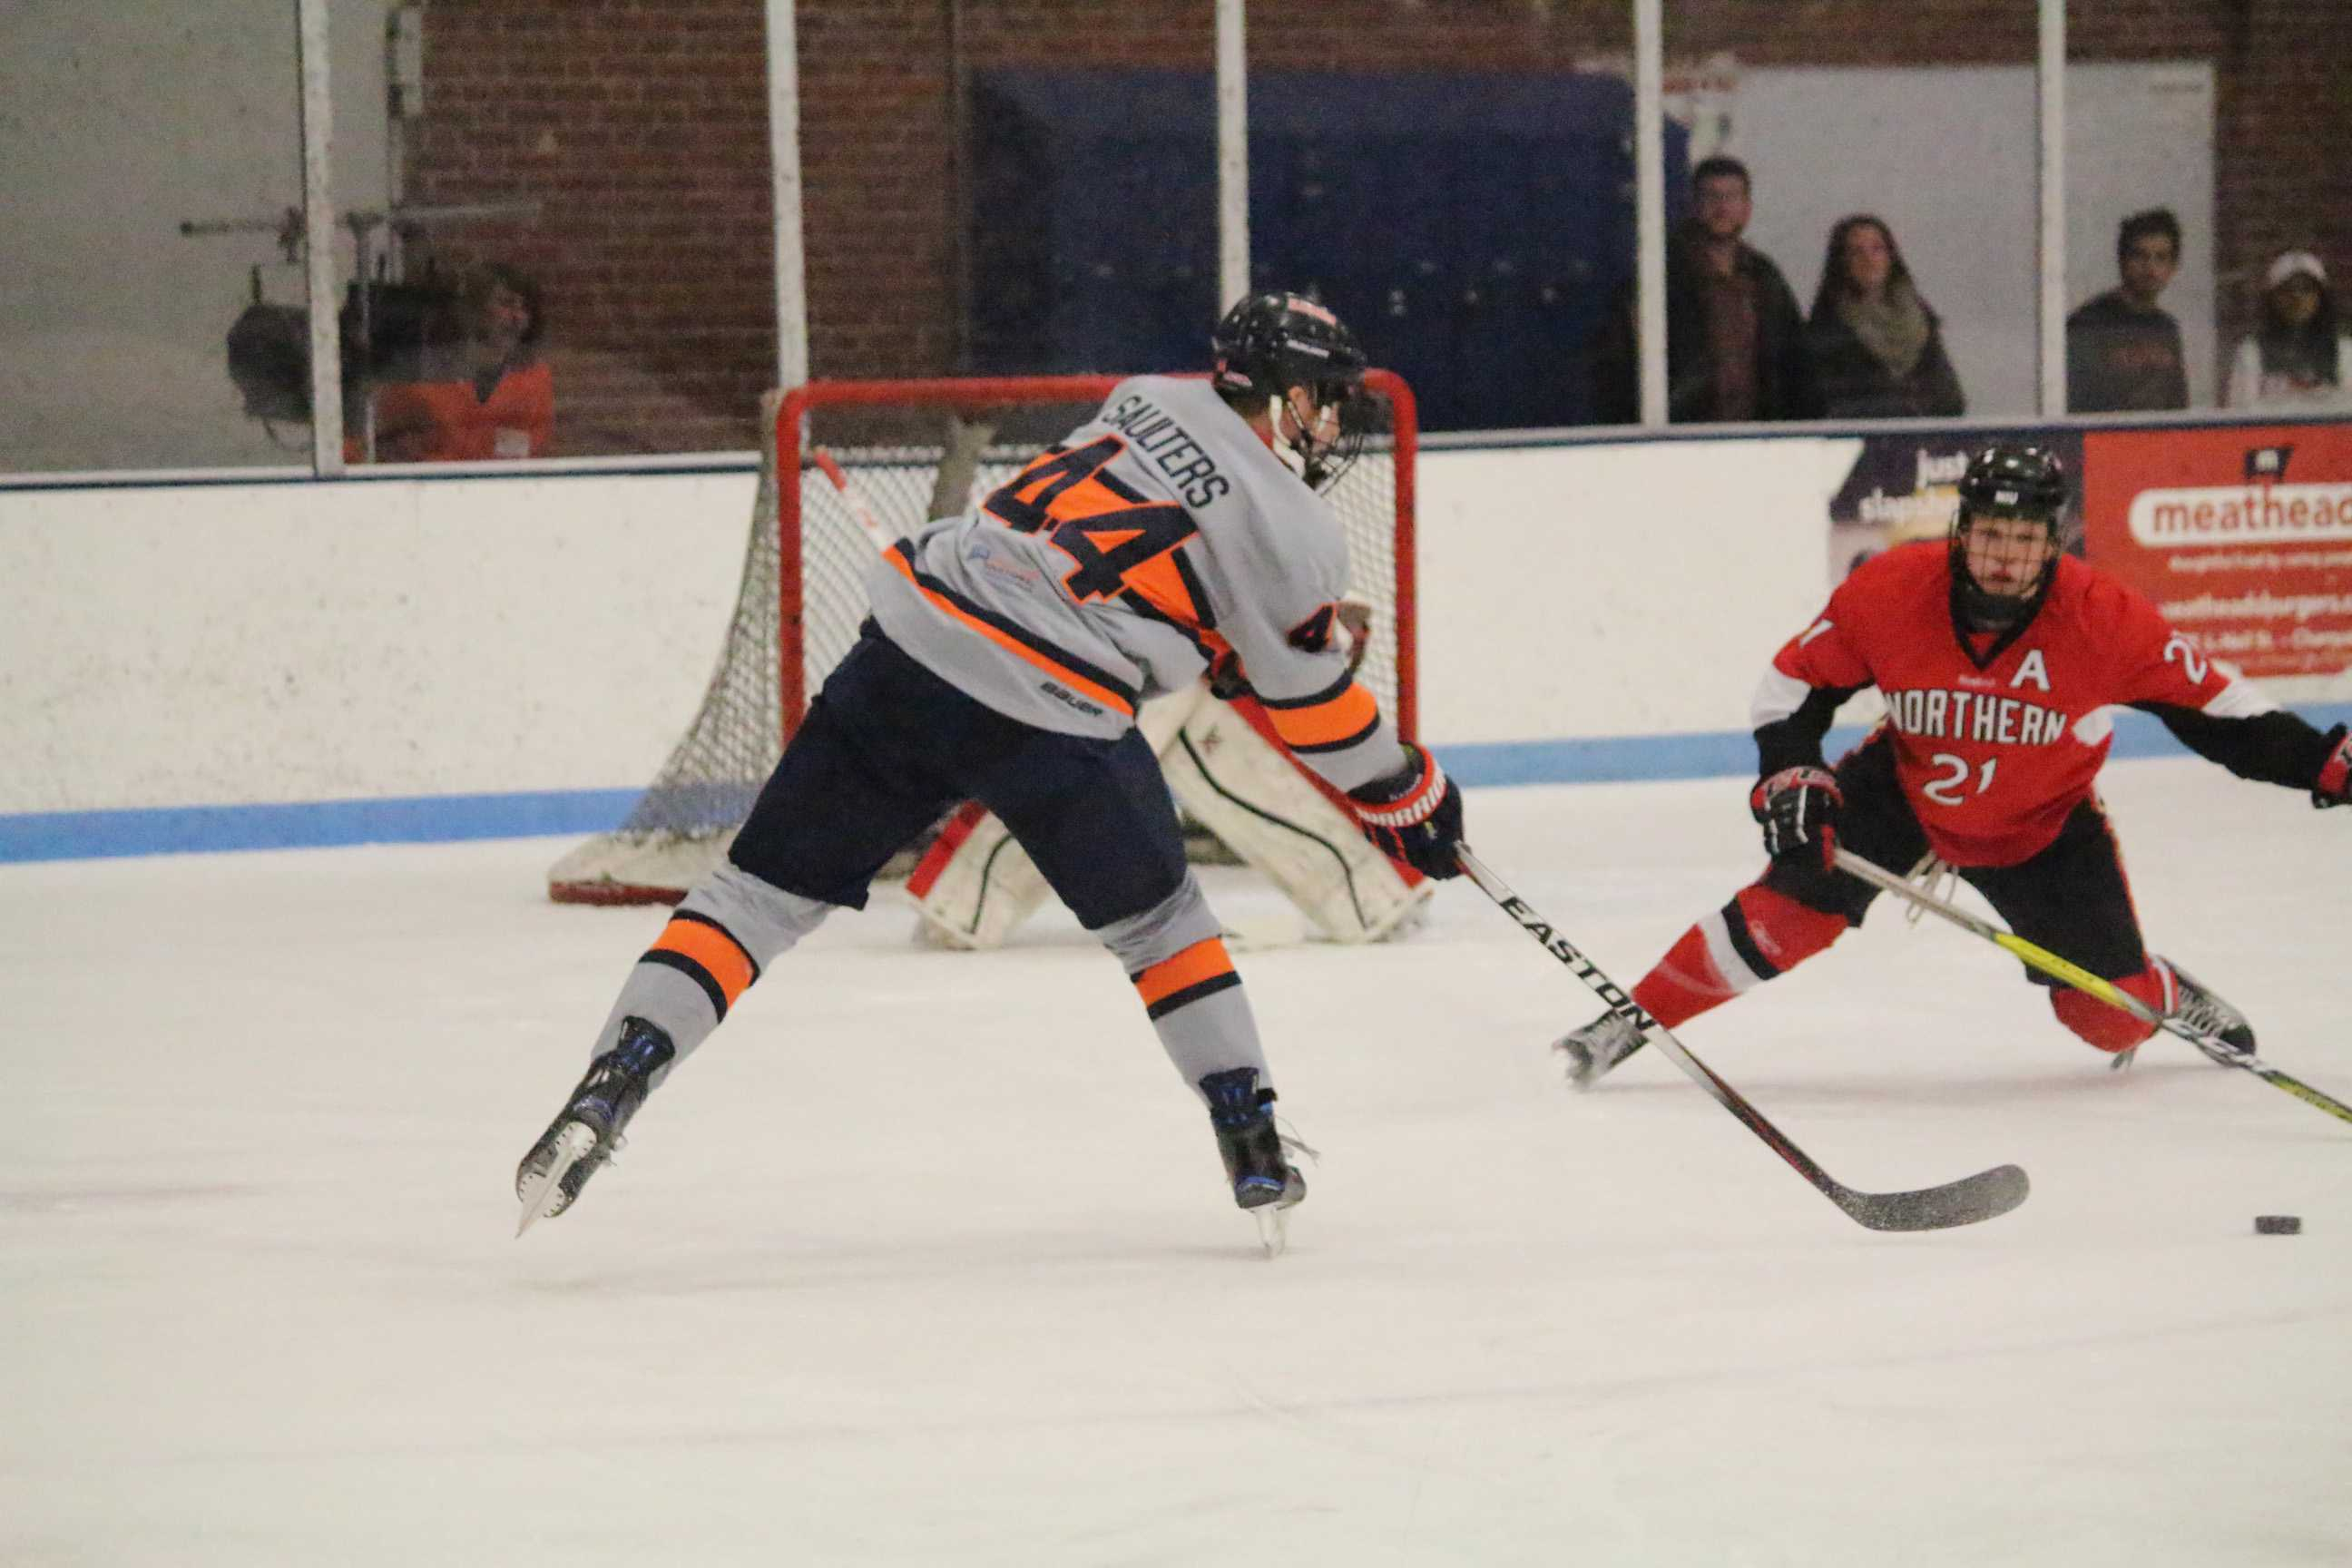 Eric Saulters (44) reaches for the puck to try and score against Northern Illinois at the Ice Arena on Friday, Dec. 2, 2016. Illini beat Northern 5-4.